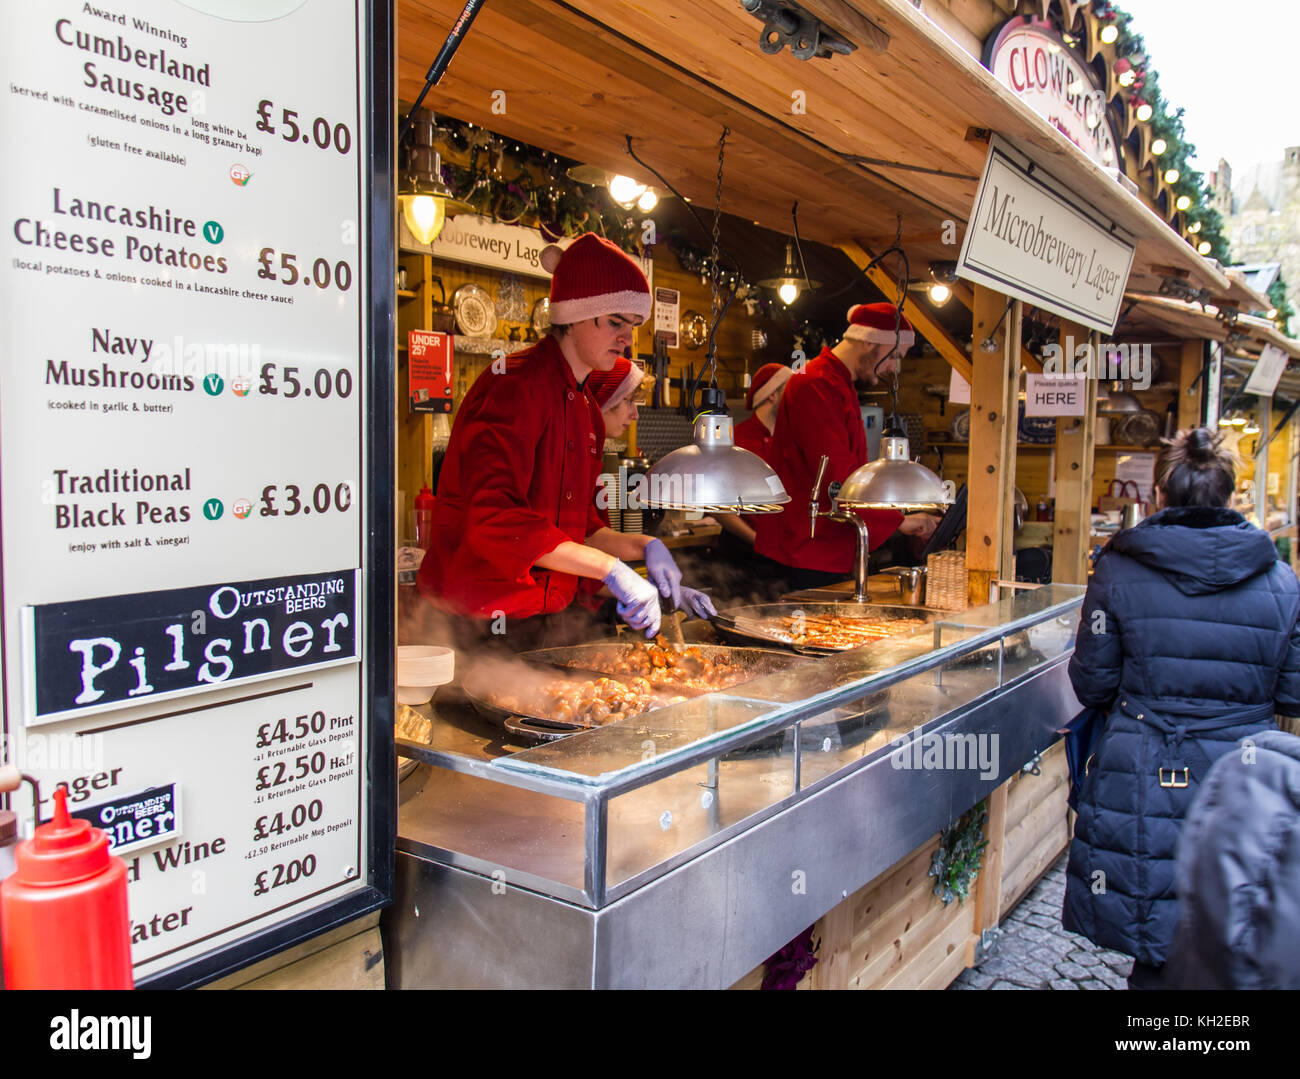 Food stall with staff  preparing food for customers at the Manchester Christmas Market on Albert Square, UK taken - Stock Image